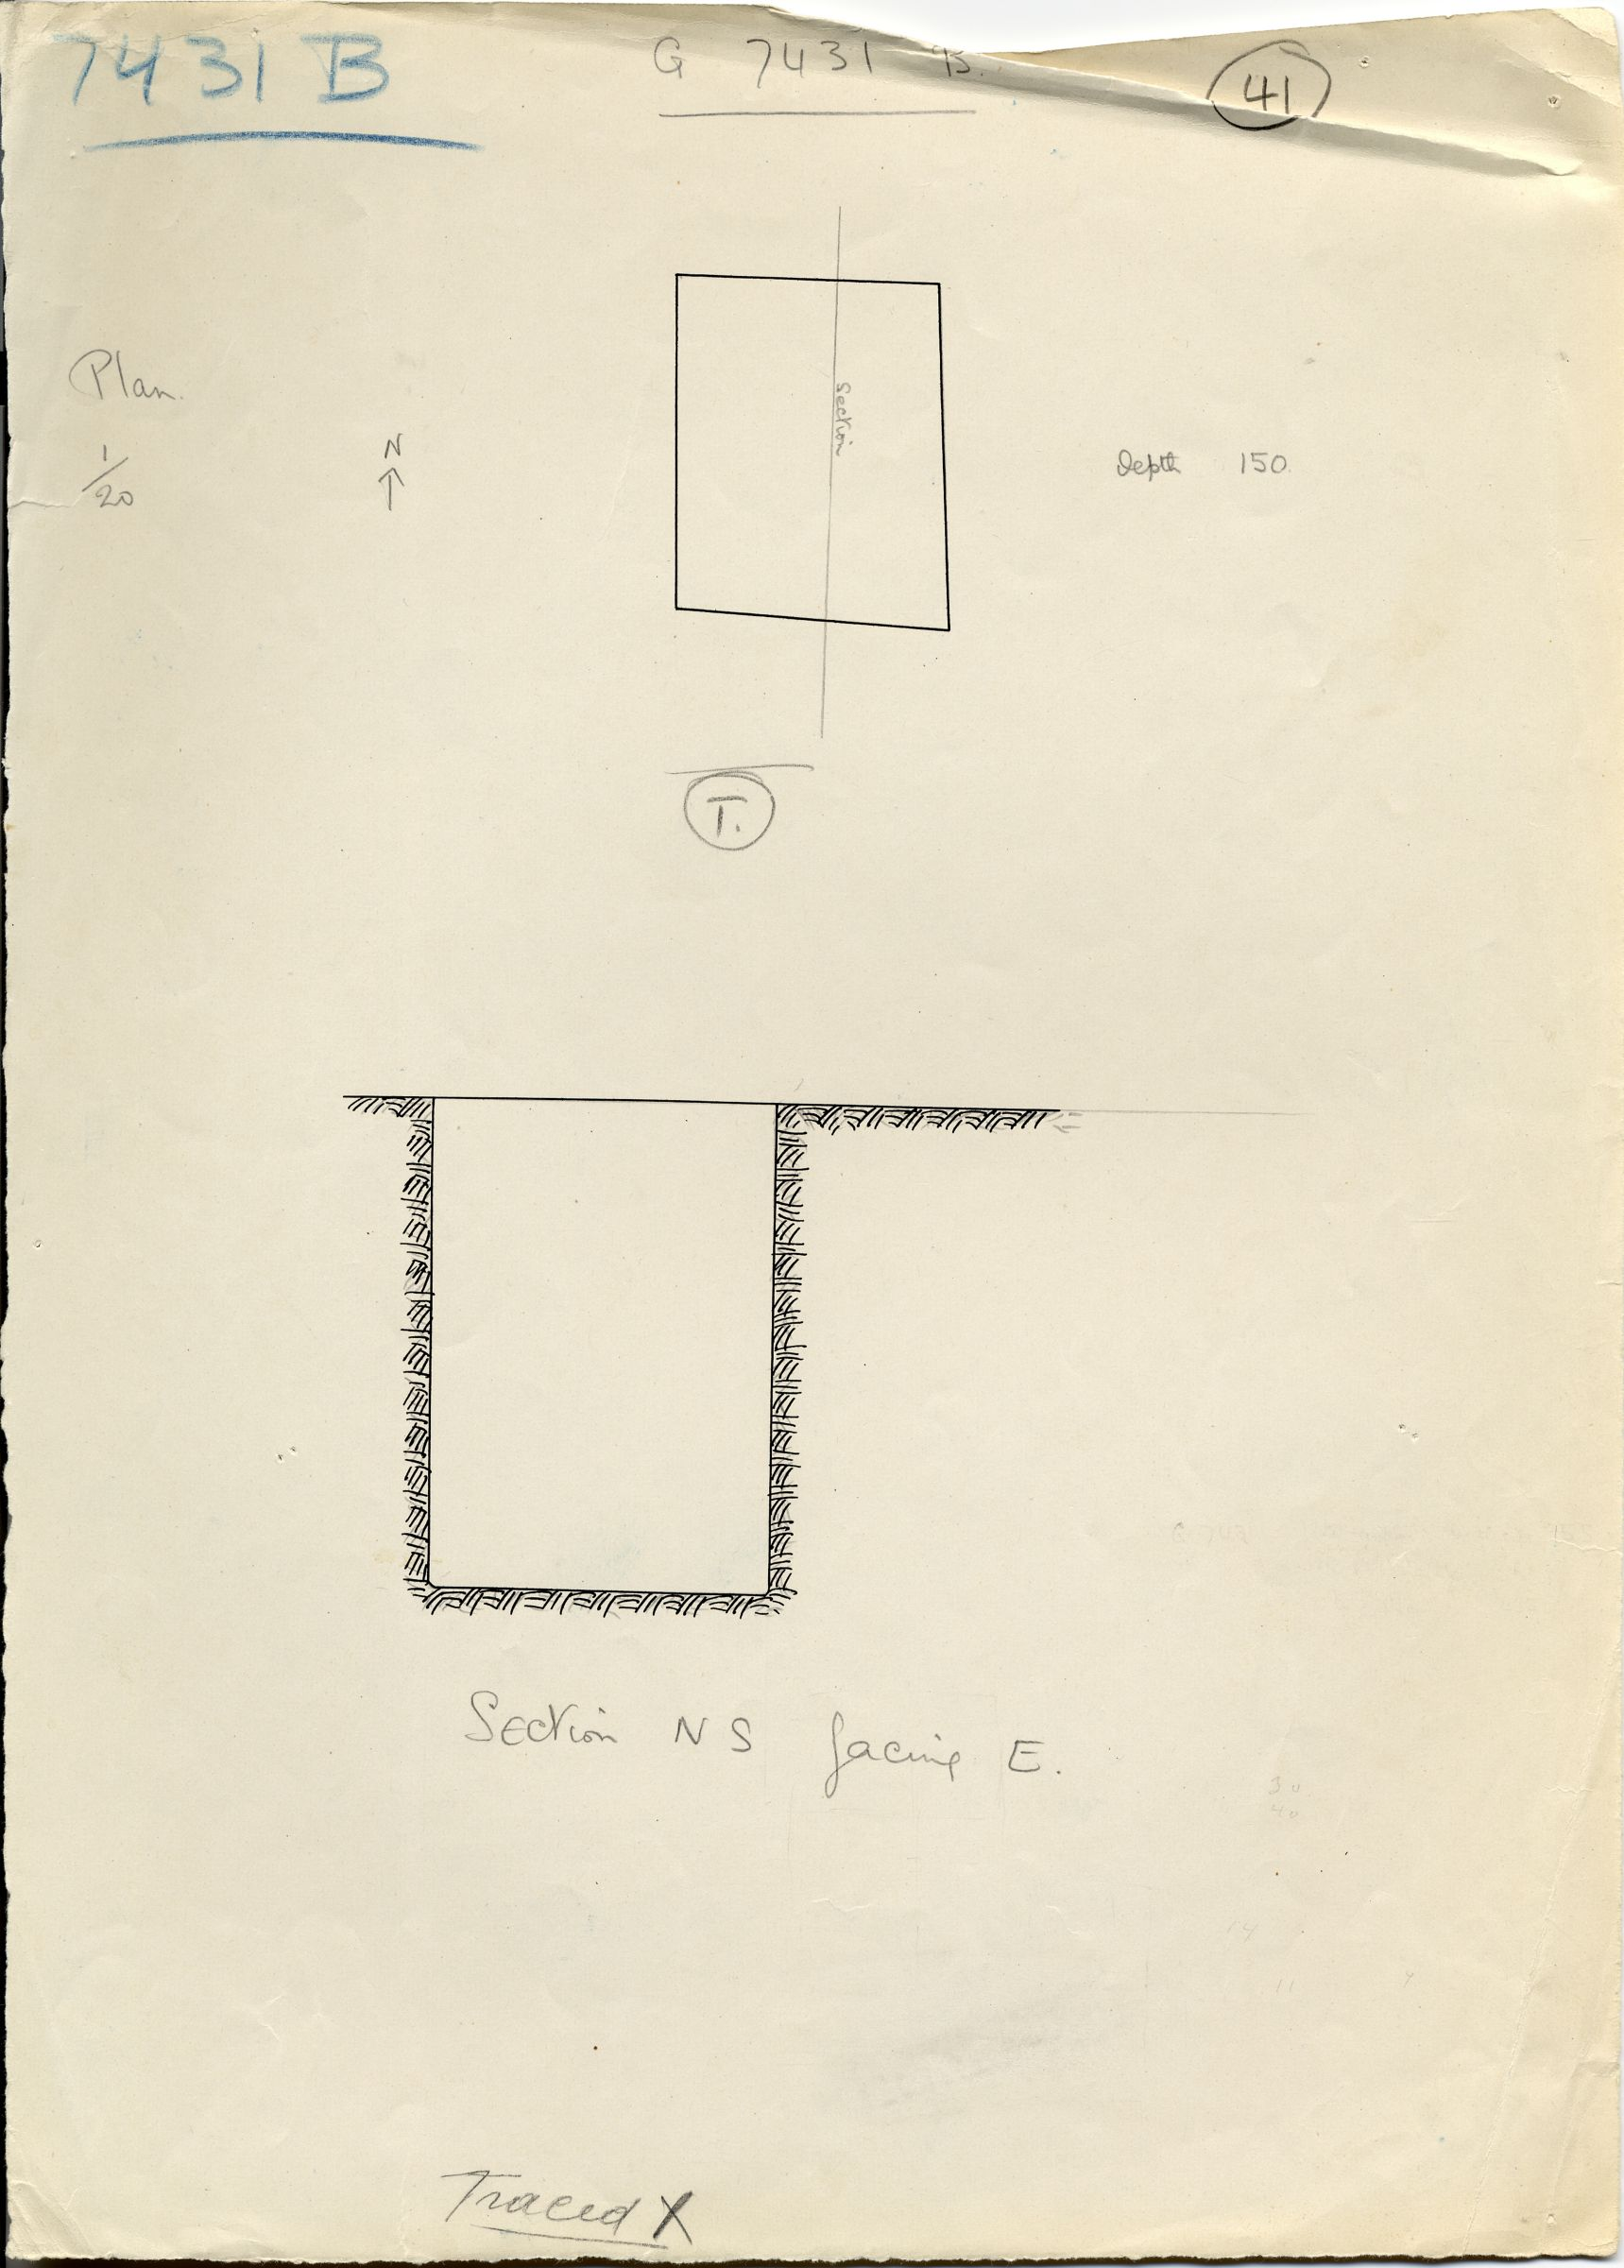 Maps and plans: G 7431, Shaft B